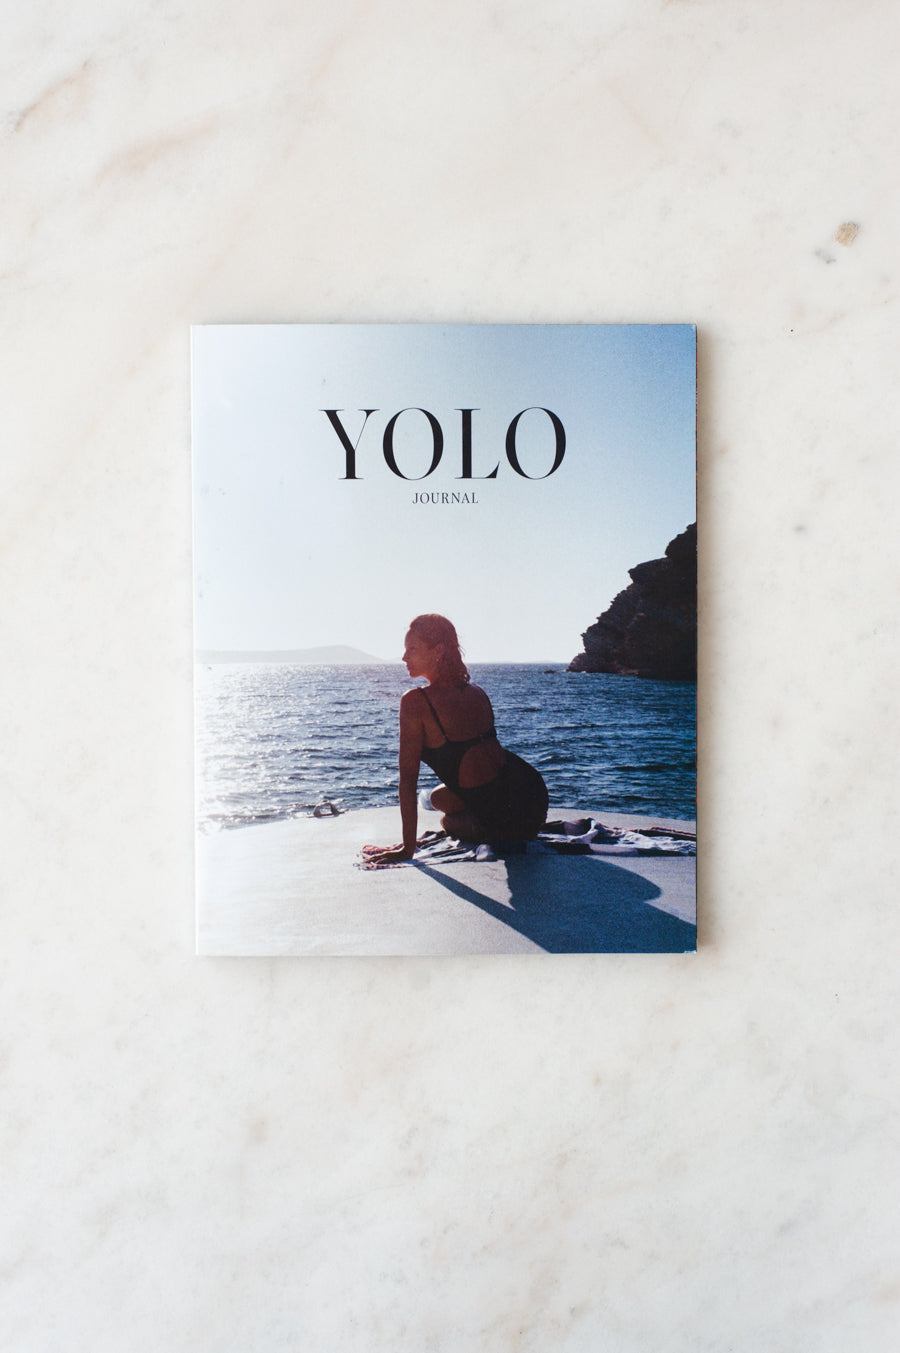 Yolo Journal - Volume 2